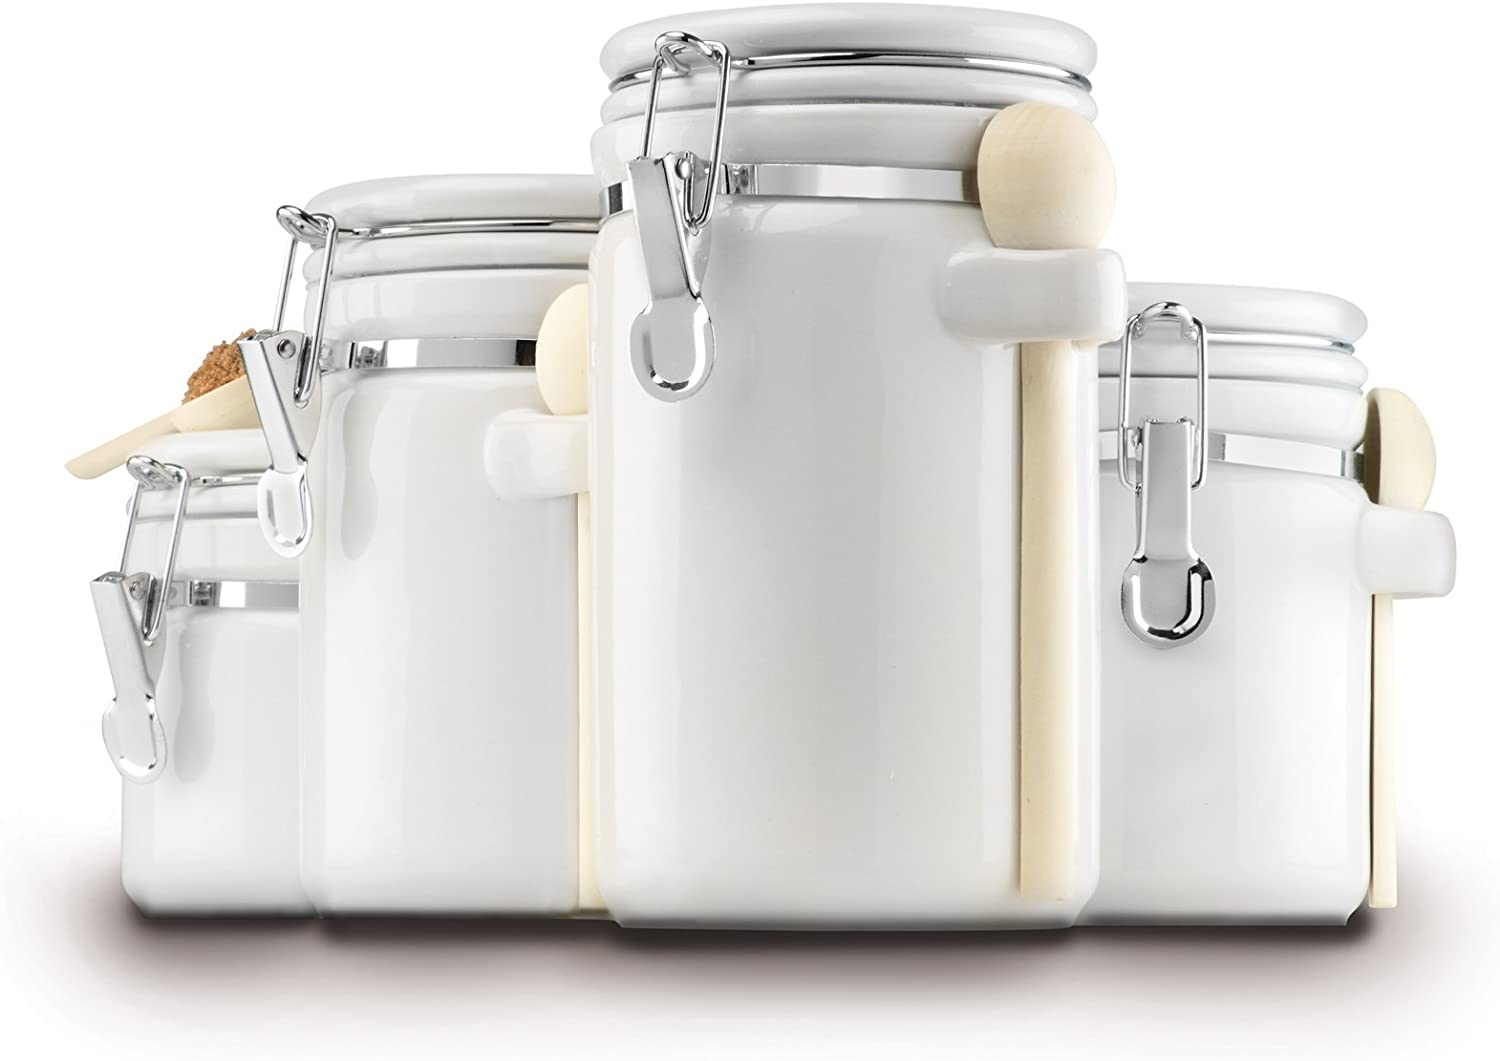 Amazon Com Anchor Hocking Ceramic Canister Set With Clamped Lid And Wooden Spoon White Mixed Sizes Set Of 4 Kitchen Storage And Organization Product Sets